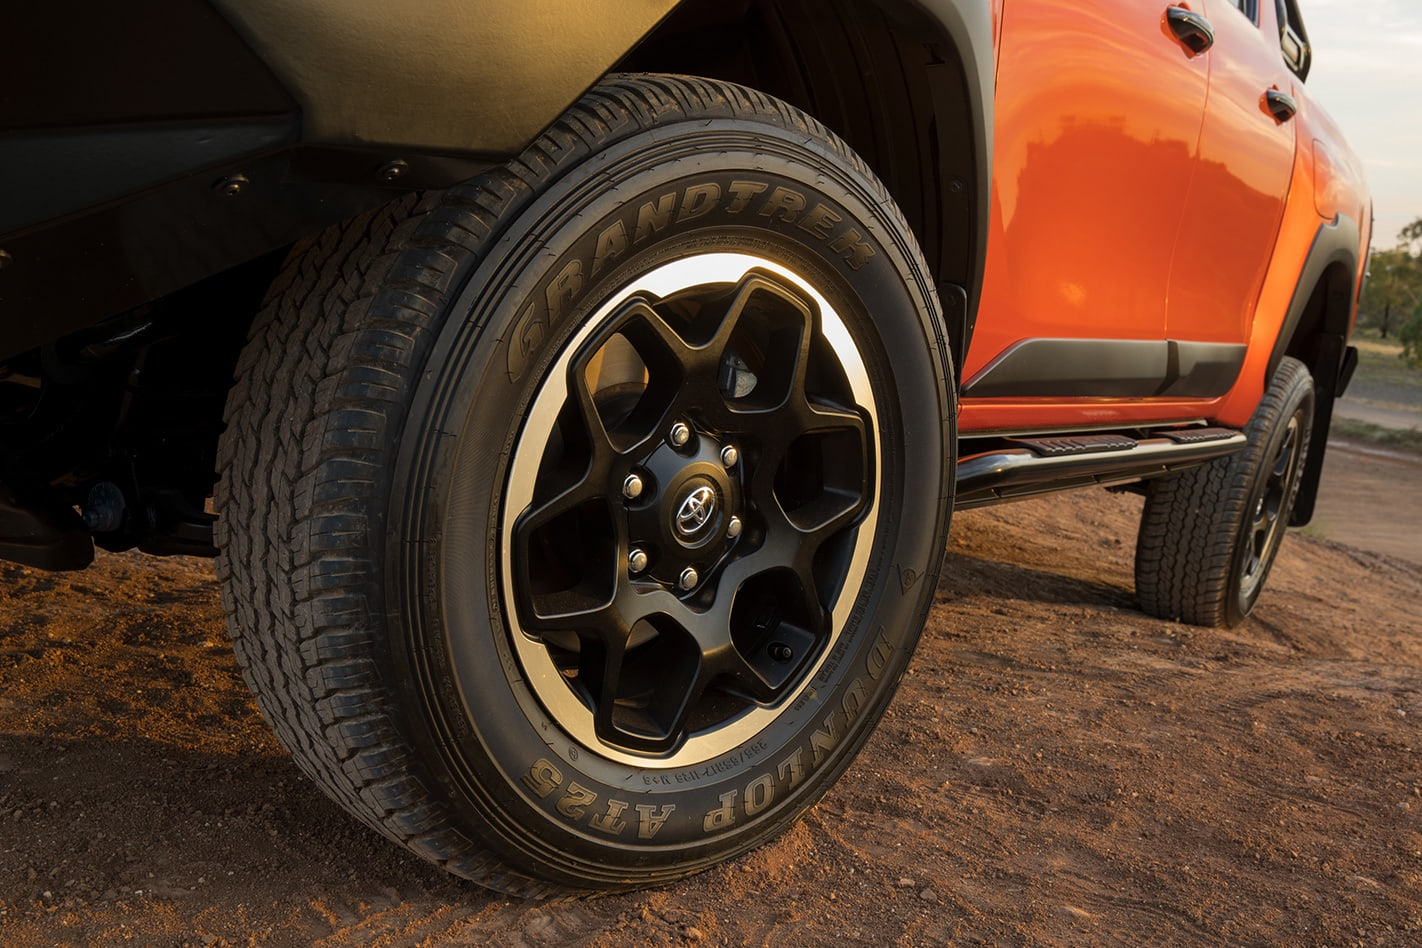 Hilux Rogue Rugged and Rugged X wheels